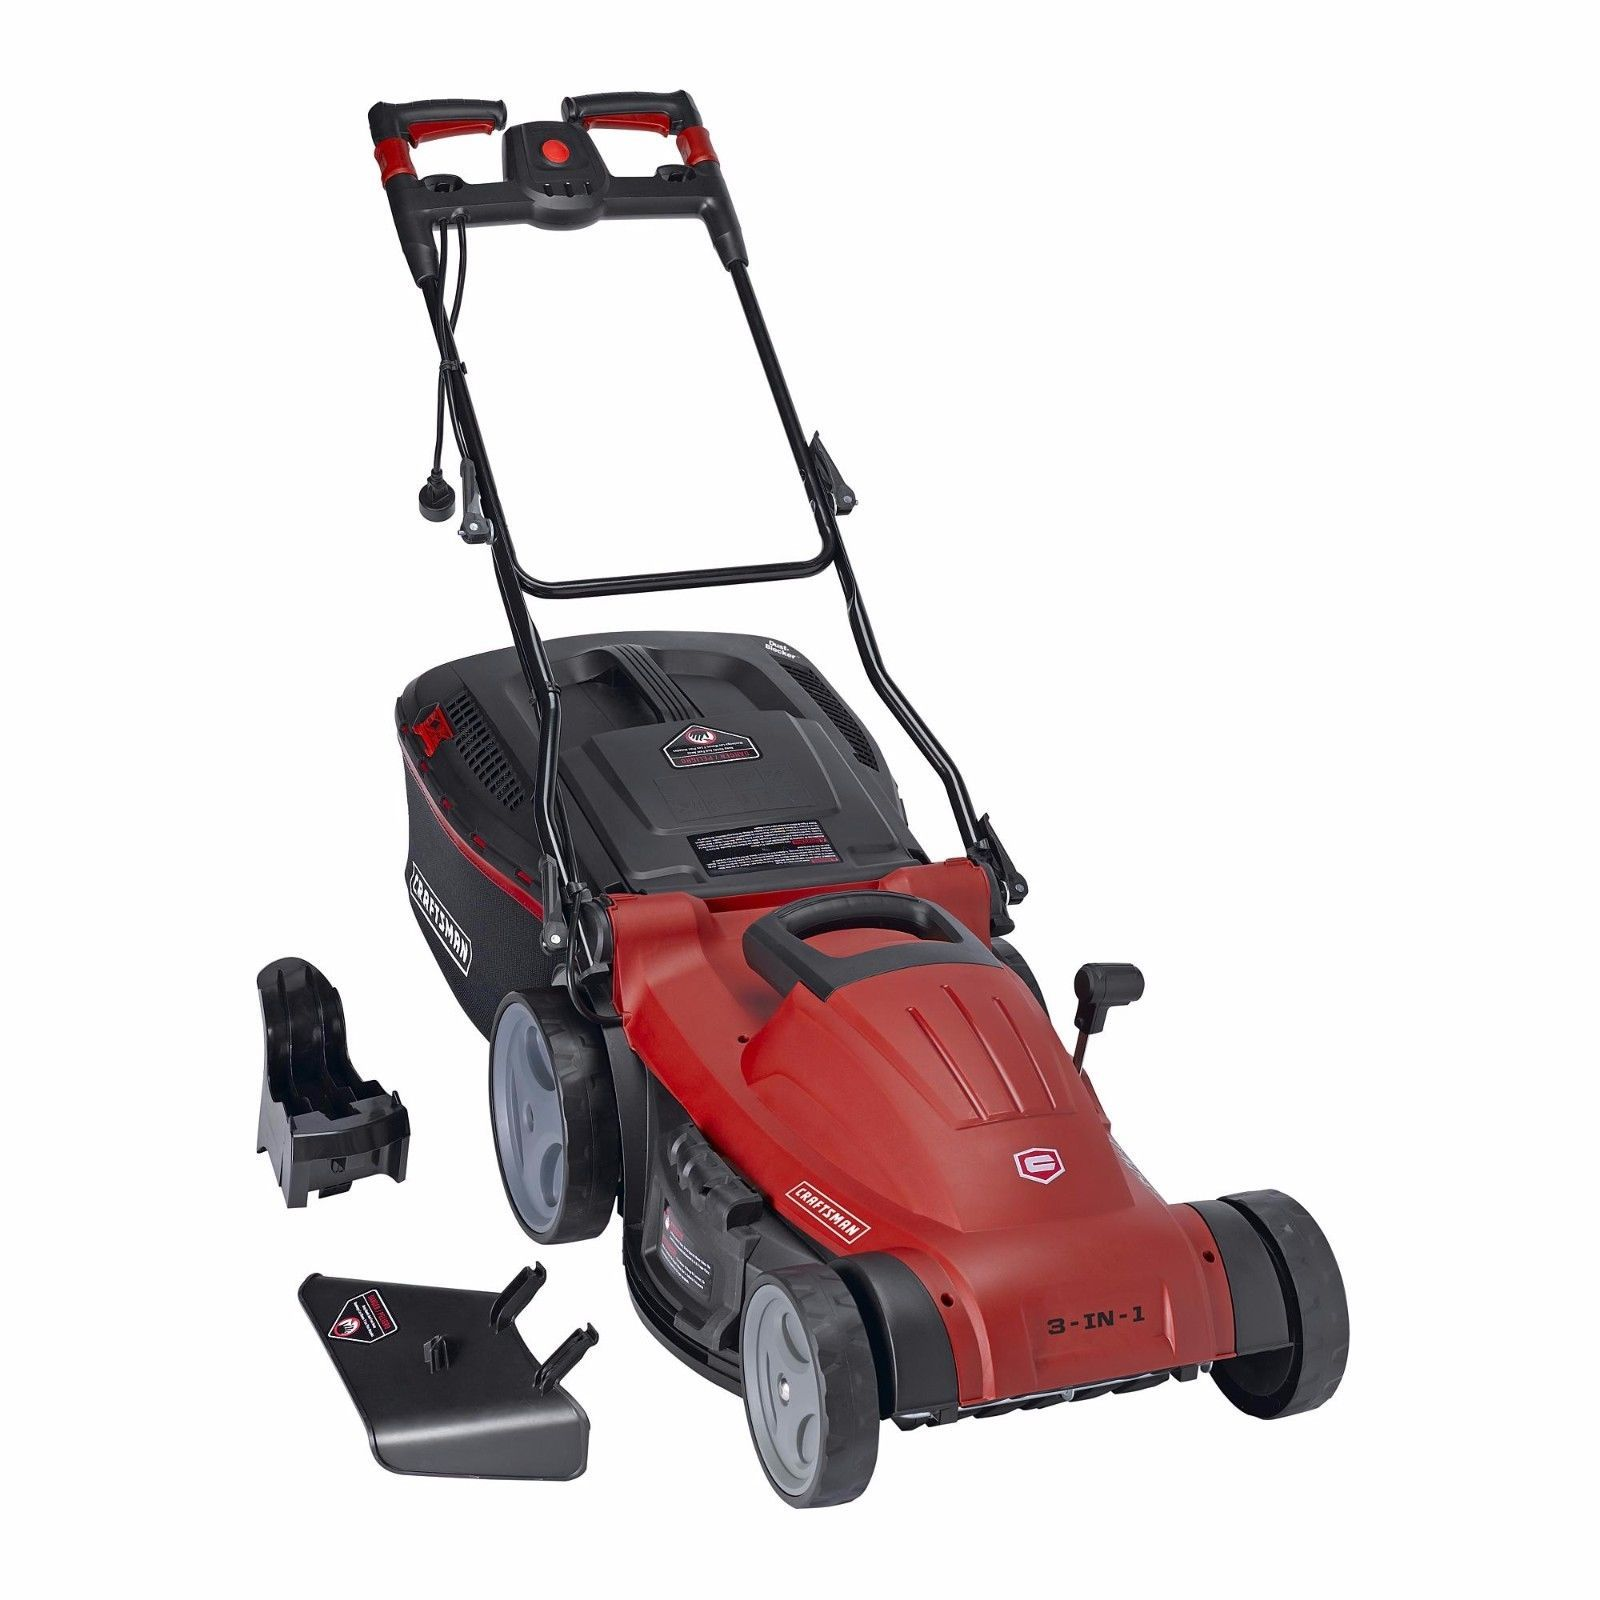 Craftsman 3 In 1 19 In Electric Push Lawn Mower 12 5 Amp Grass Cutter Mulcher Push Lawn Mower Grass Cutter Mower